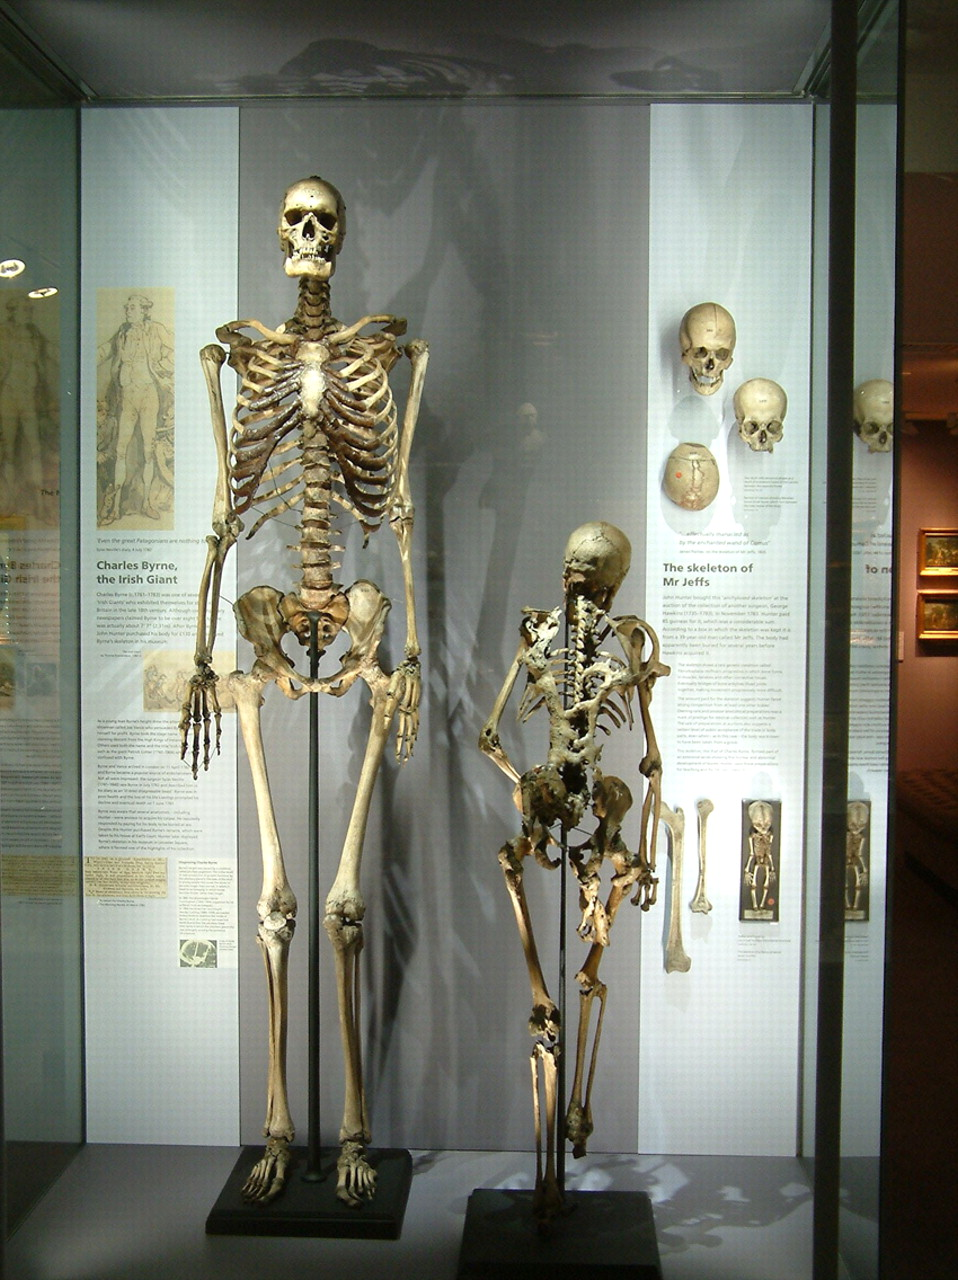 The fact that his skeleton is in this display gives you a hint about why Charles Byrne was afraid of John Hunter.... (Image: The History Blog)